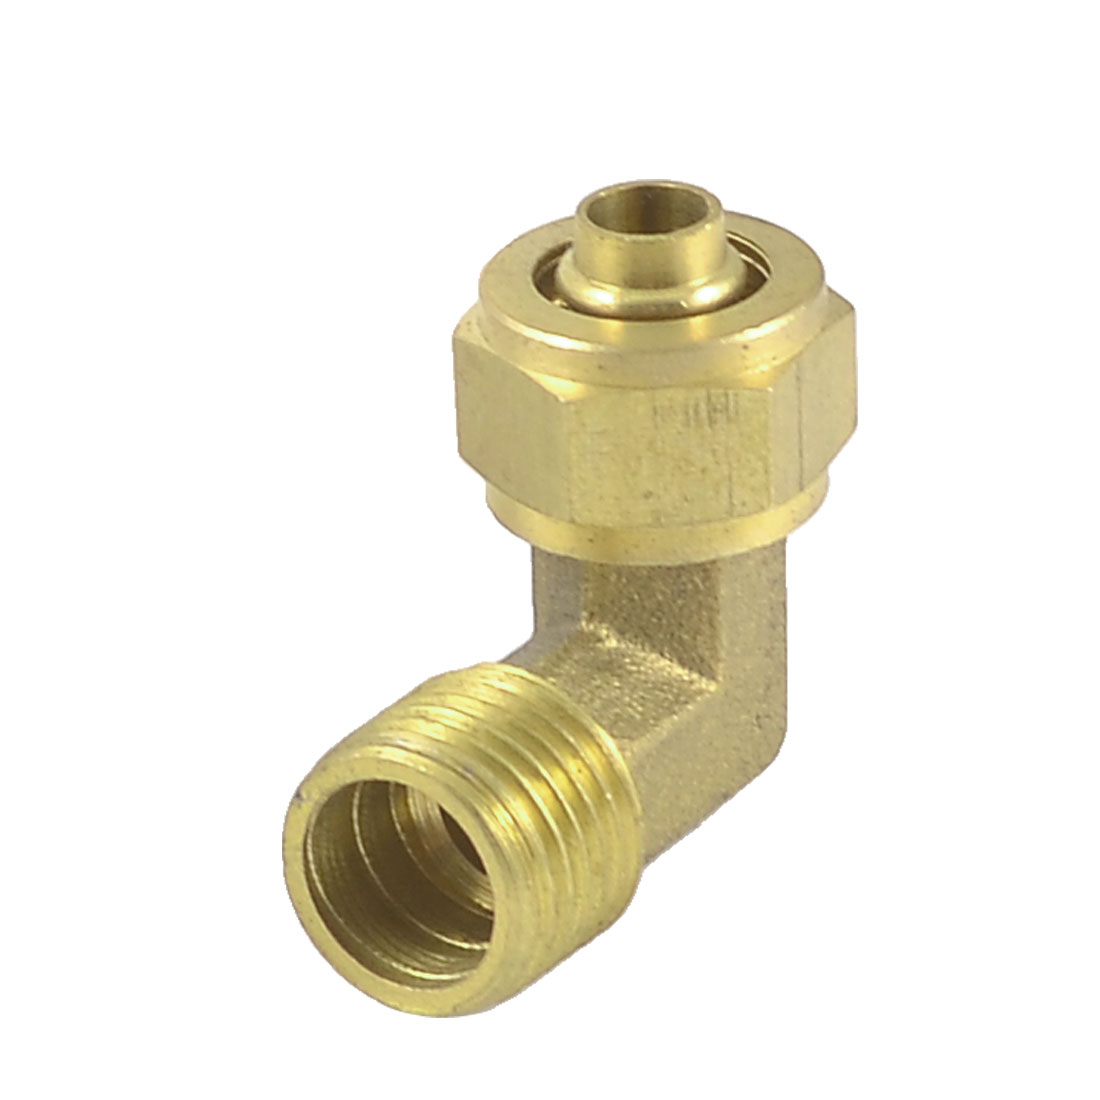 6mmx10mm Tube 13mm Male Thread L Shaped Elbow Quick Coupler Fittings